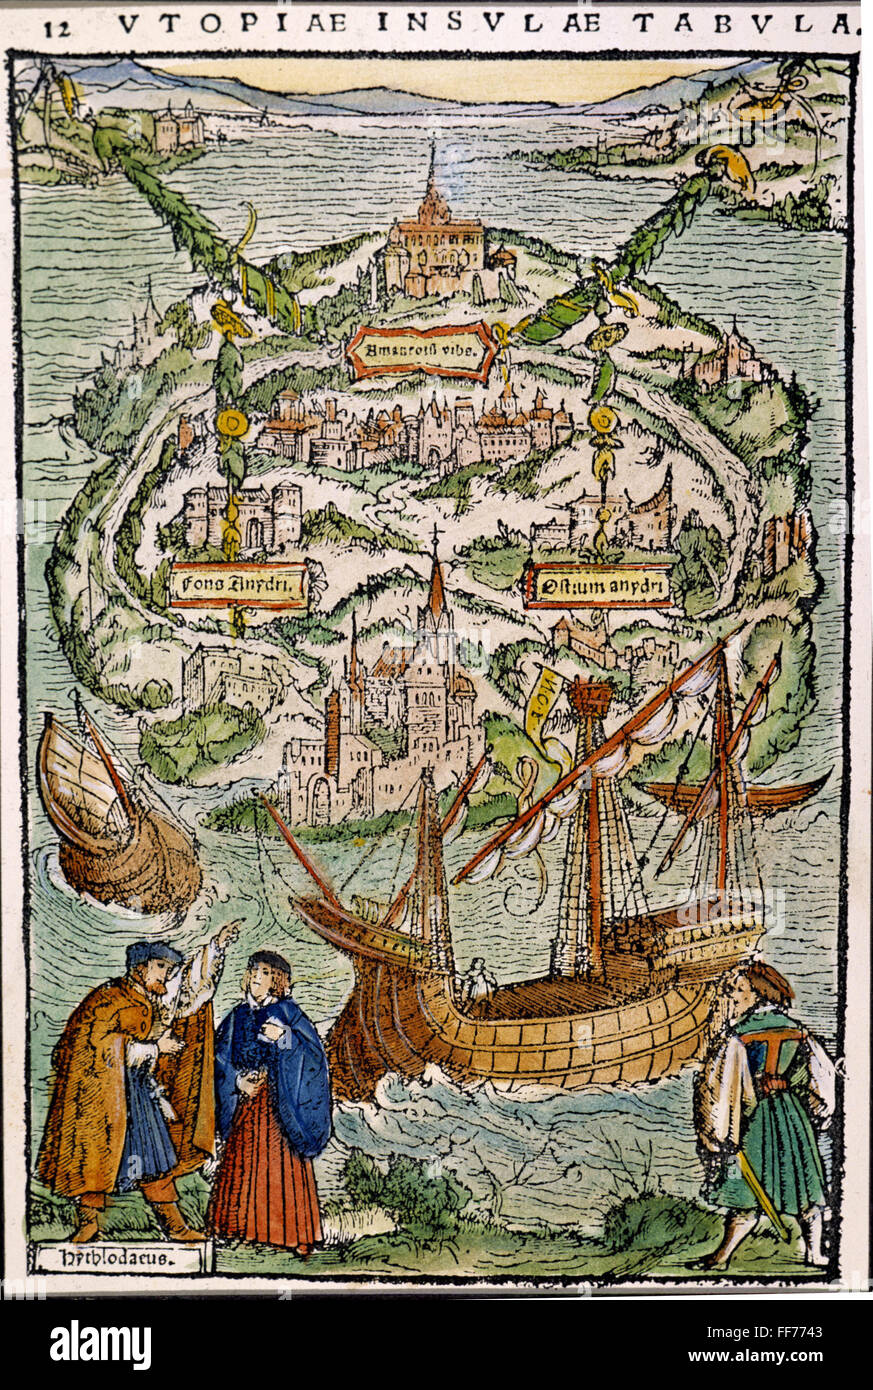 THE VIEW OF UTOPIA. /nWoodcut, probably by Ambrosius Holbein, from Sir Thomas More's 'Utopia,' Basel, Switzerland, Stock Photo